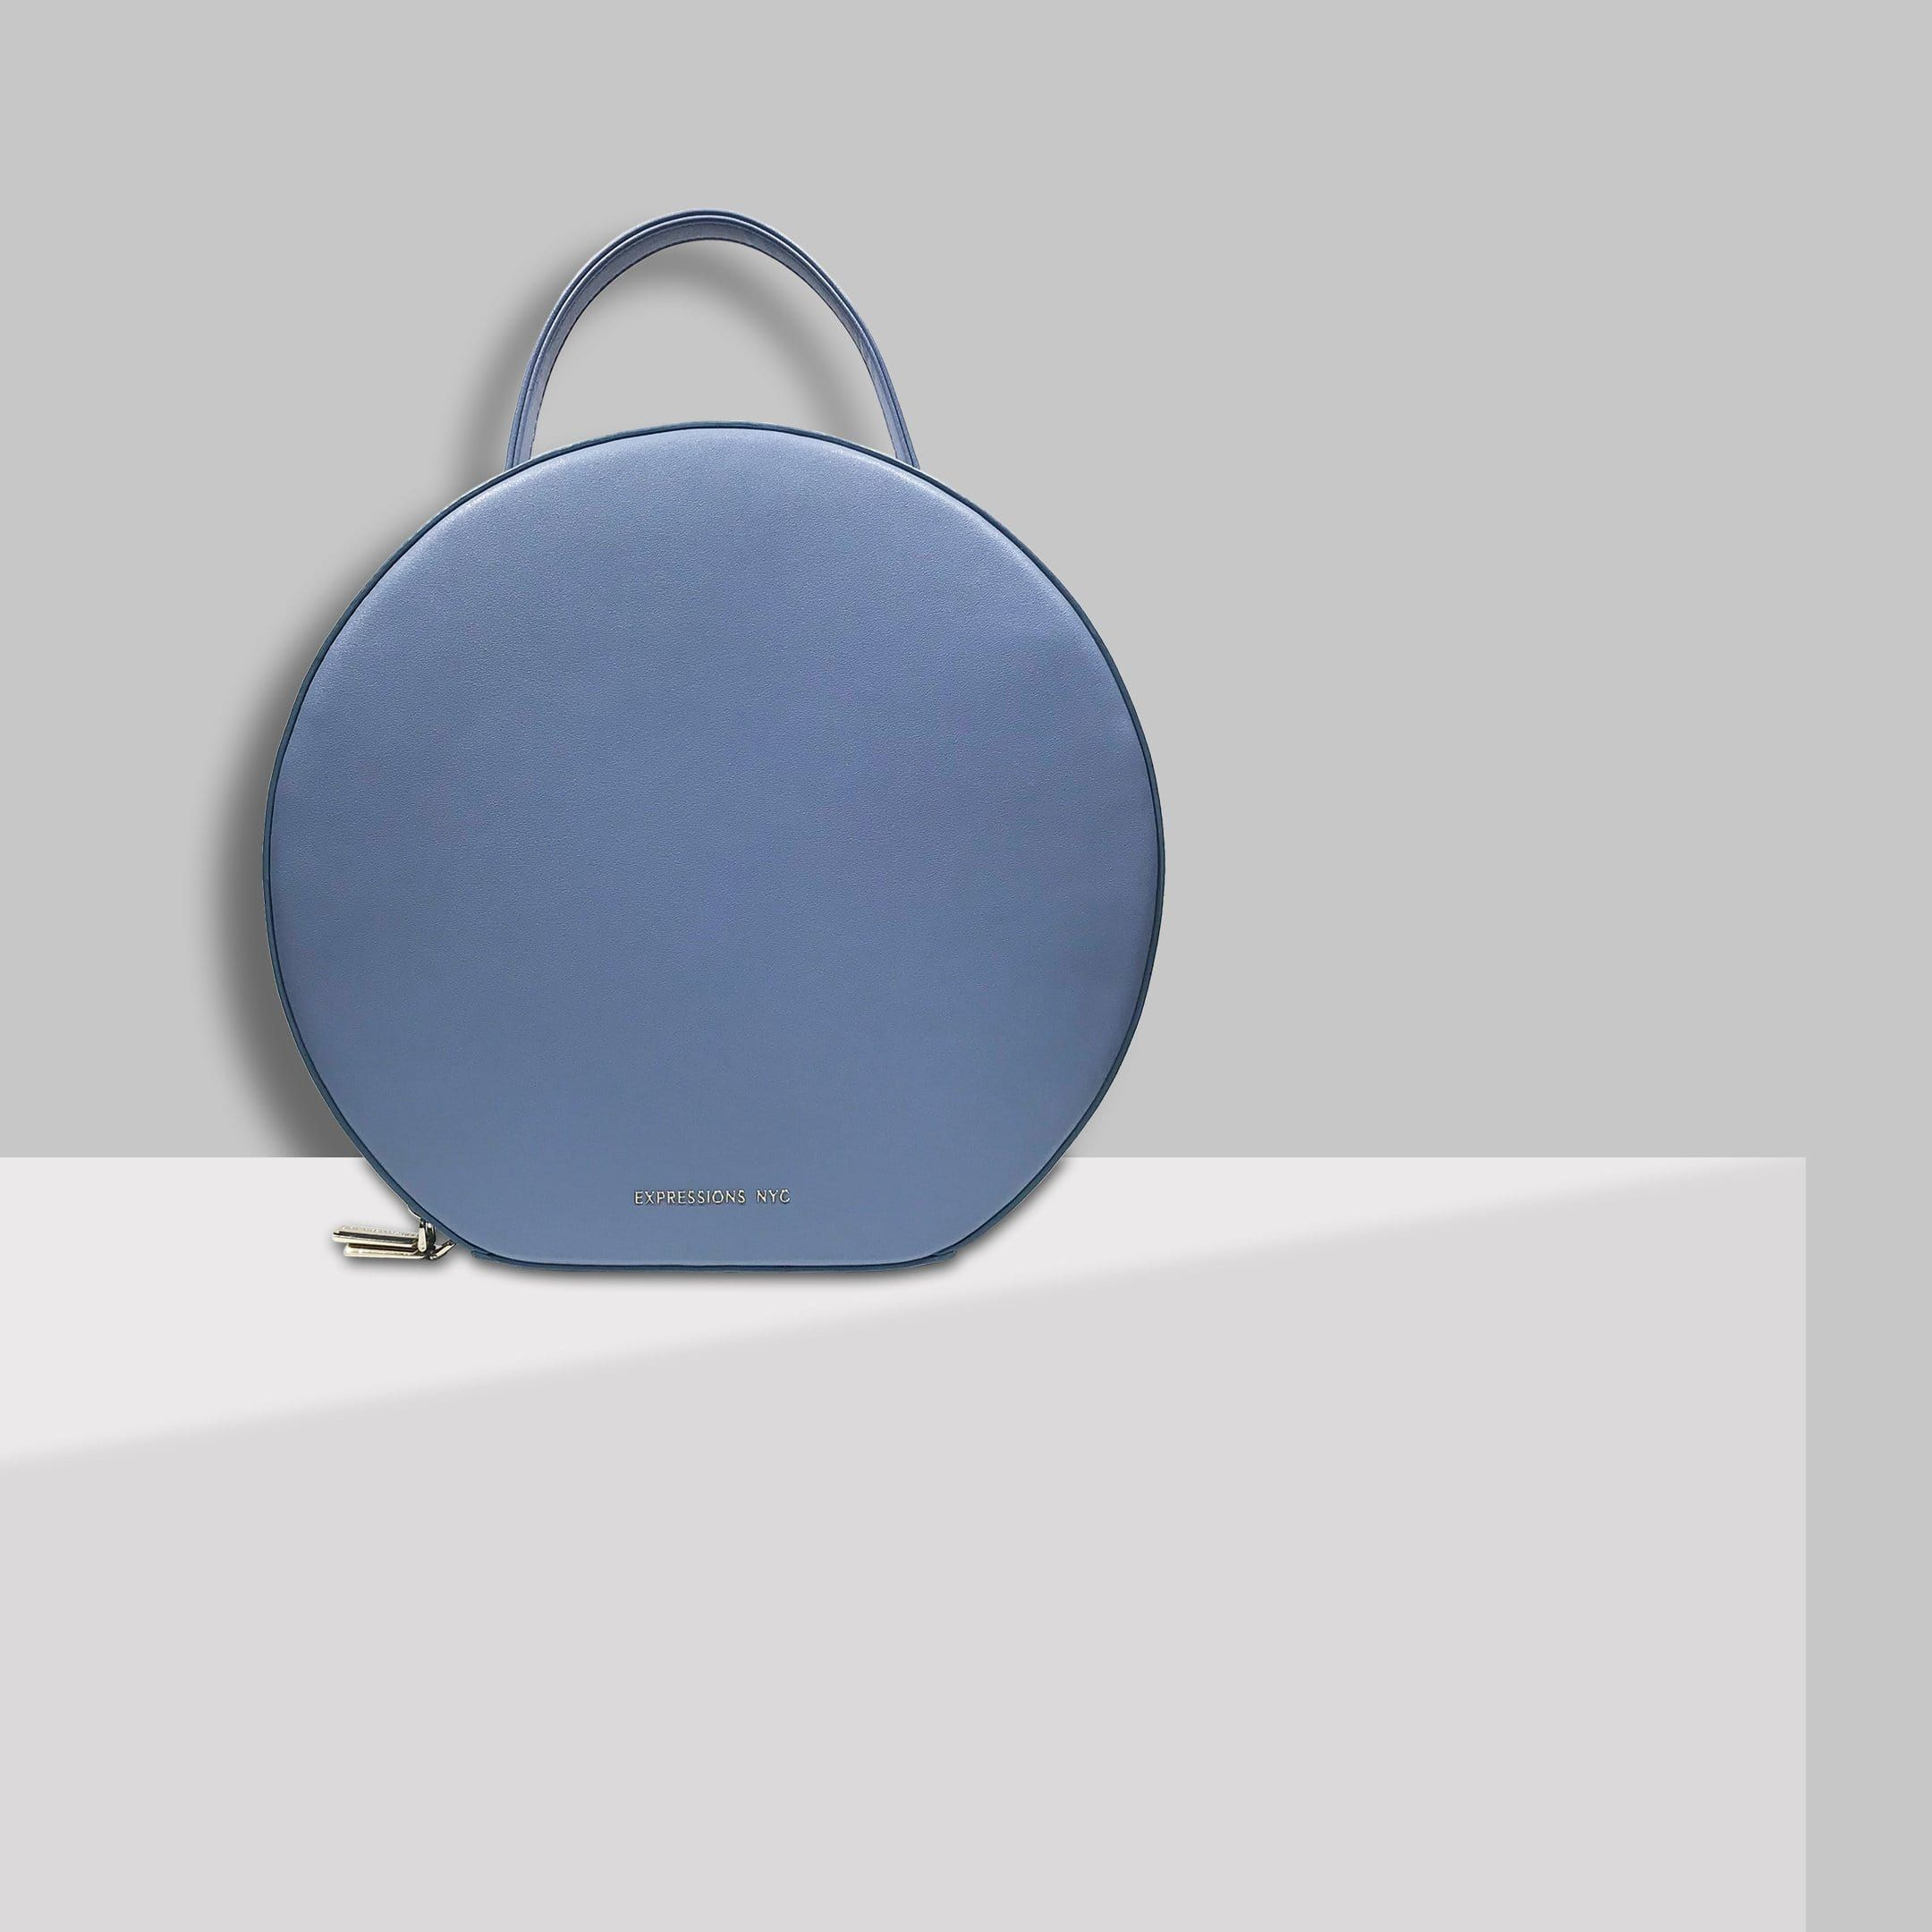 Expressions Nyc Sustainable Vegan Leather Bags On Renoon In 2020 Vegan Leather Bag Vegan Leather Backpack Sustainable Accessories